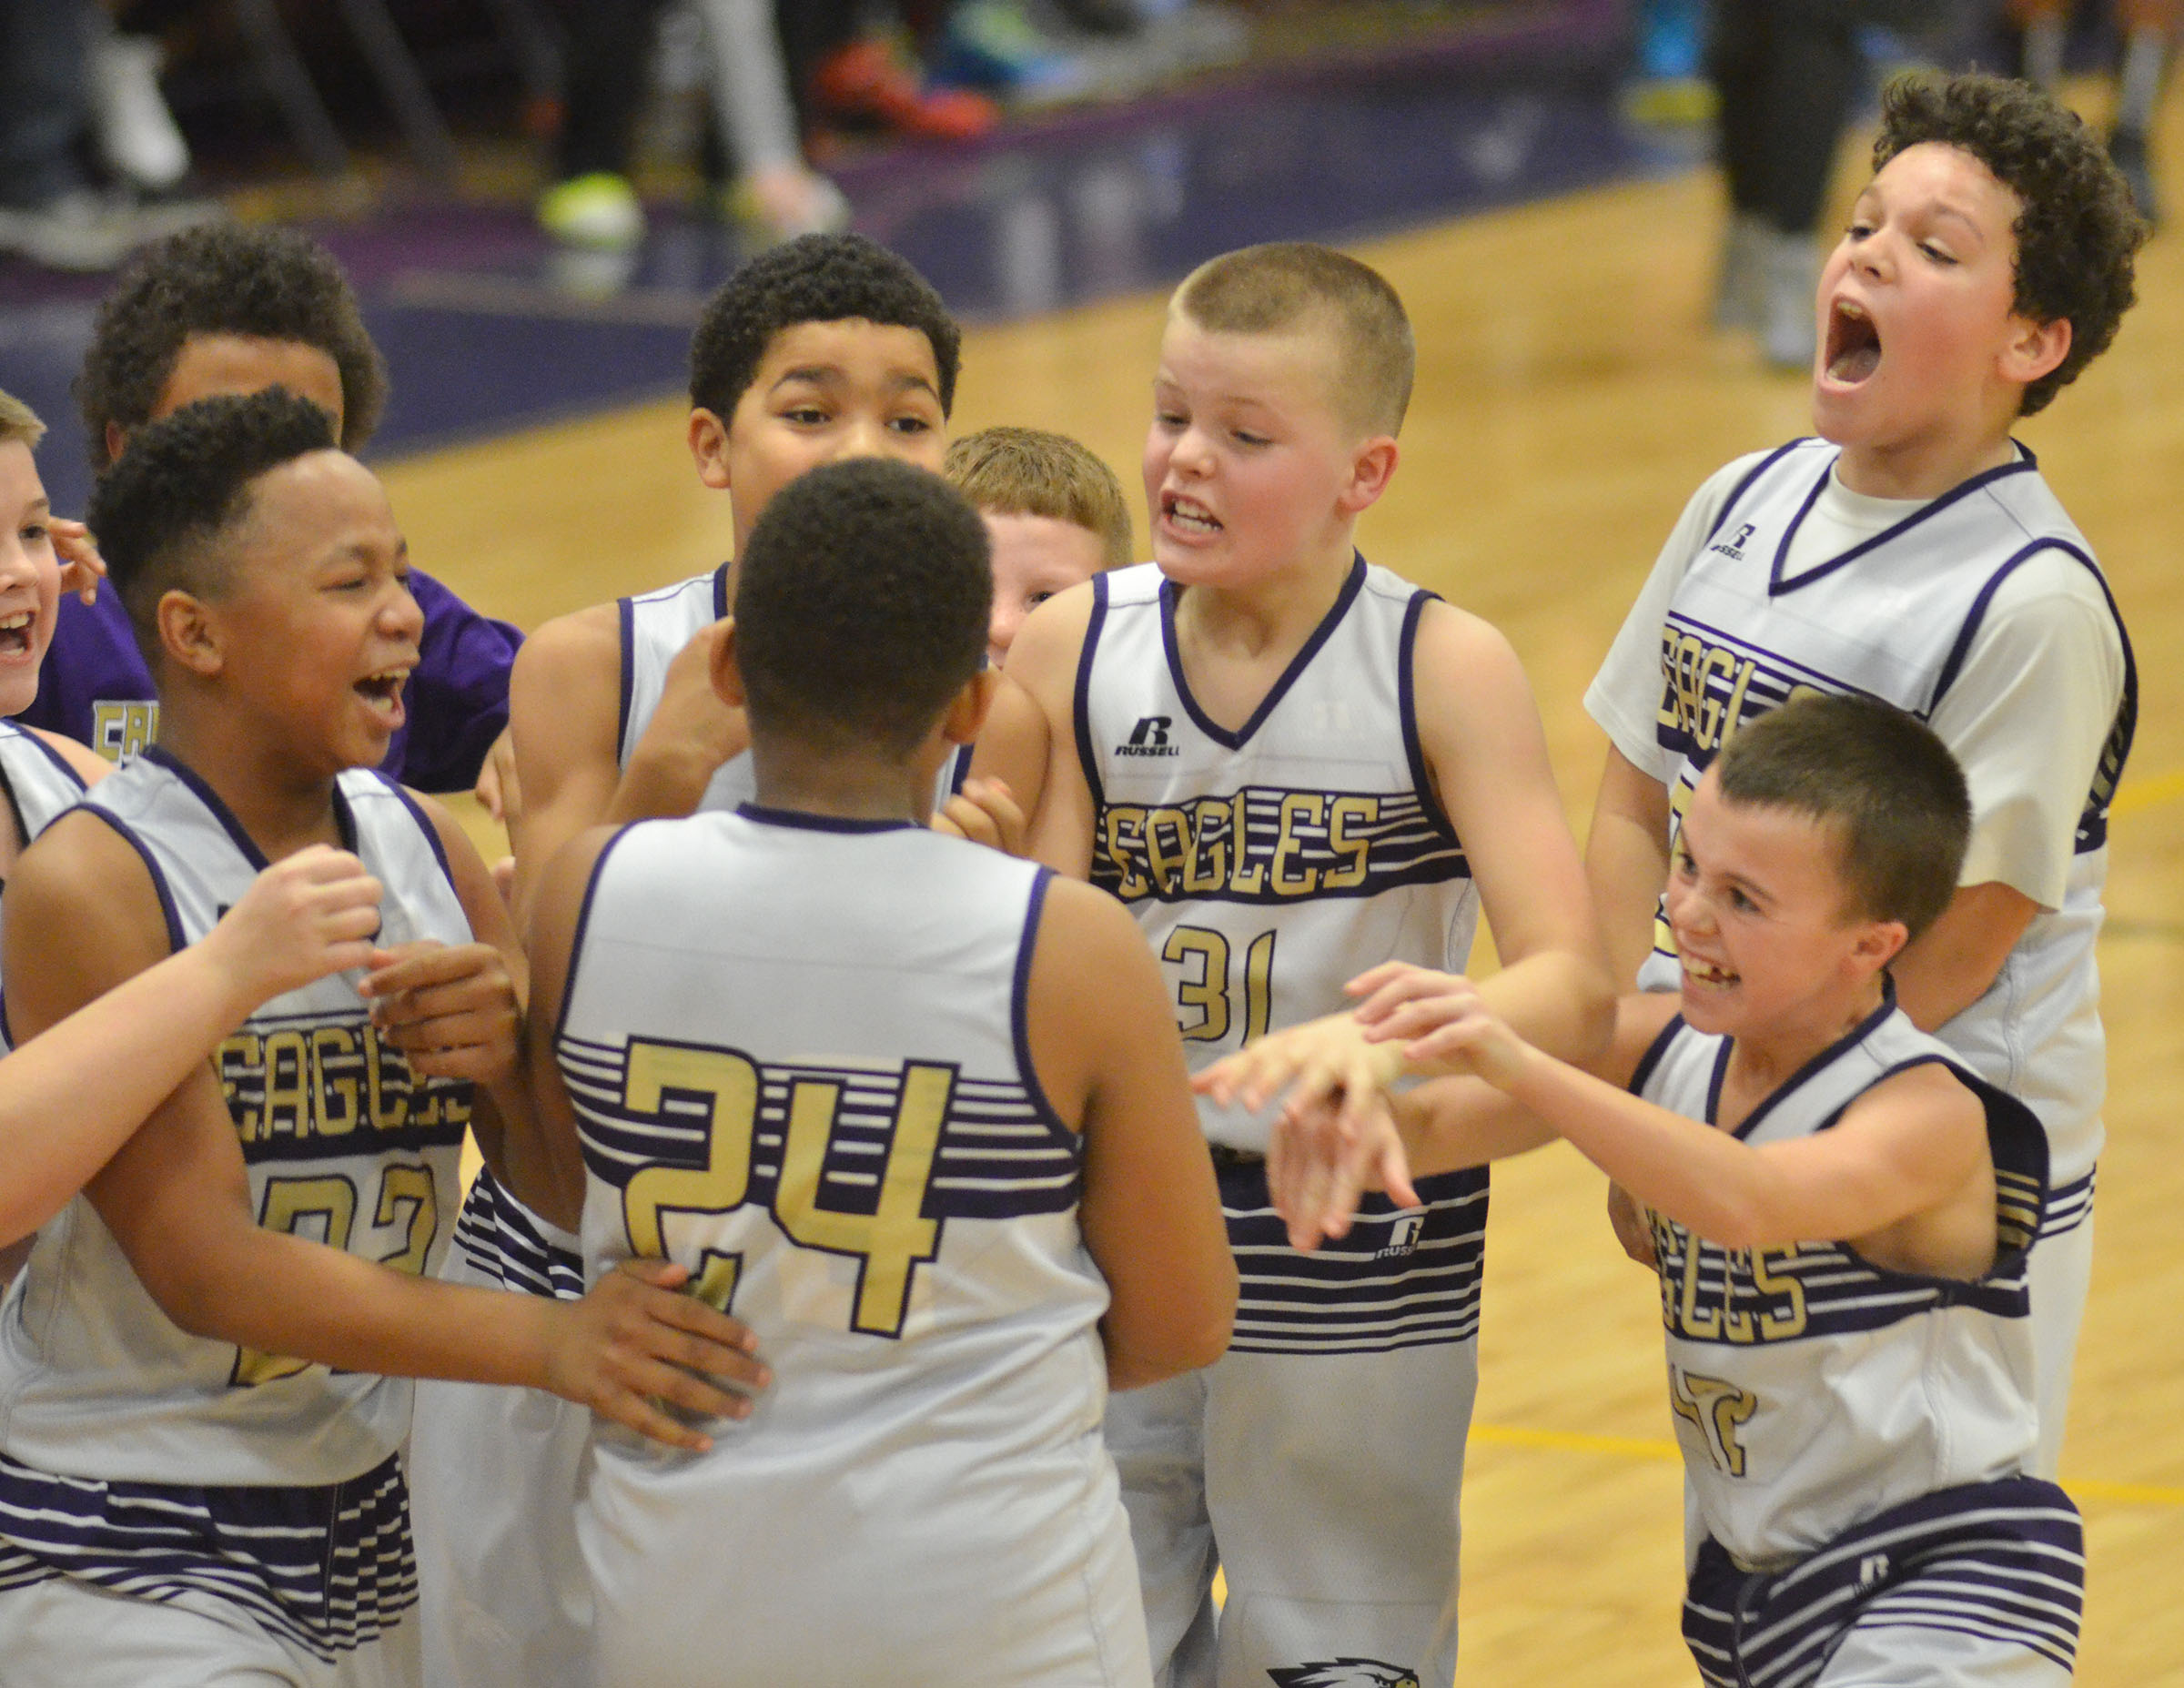 CMS sixth-grade players celebrate after Keondre Weathers, center, makes a foul shot to win the ball game.